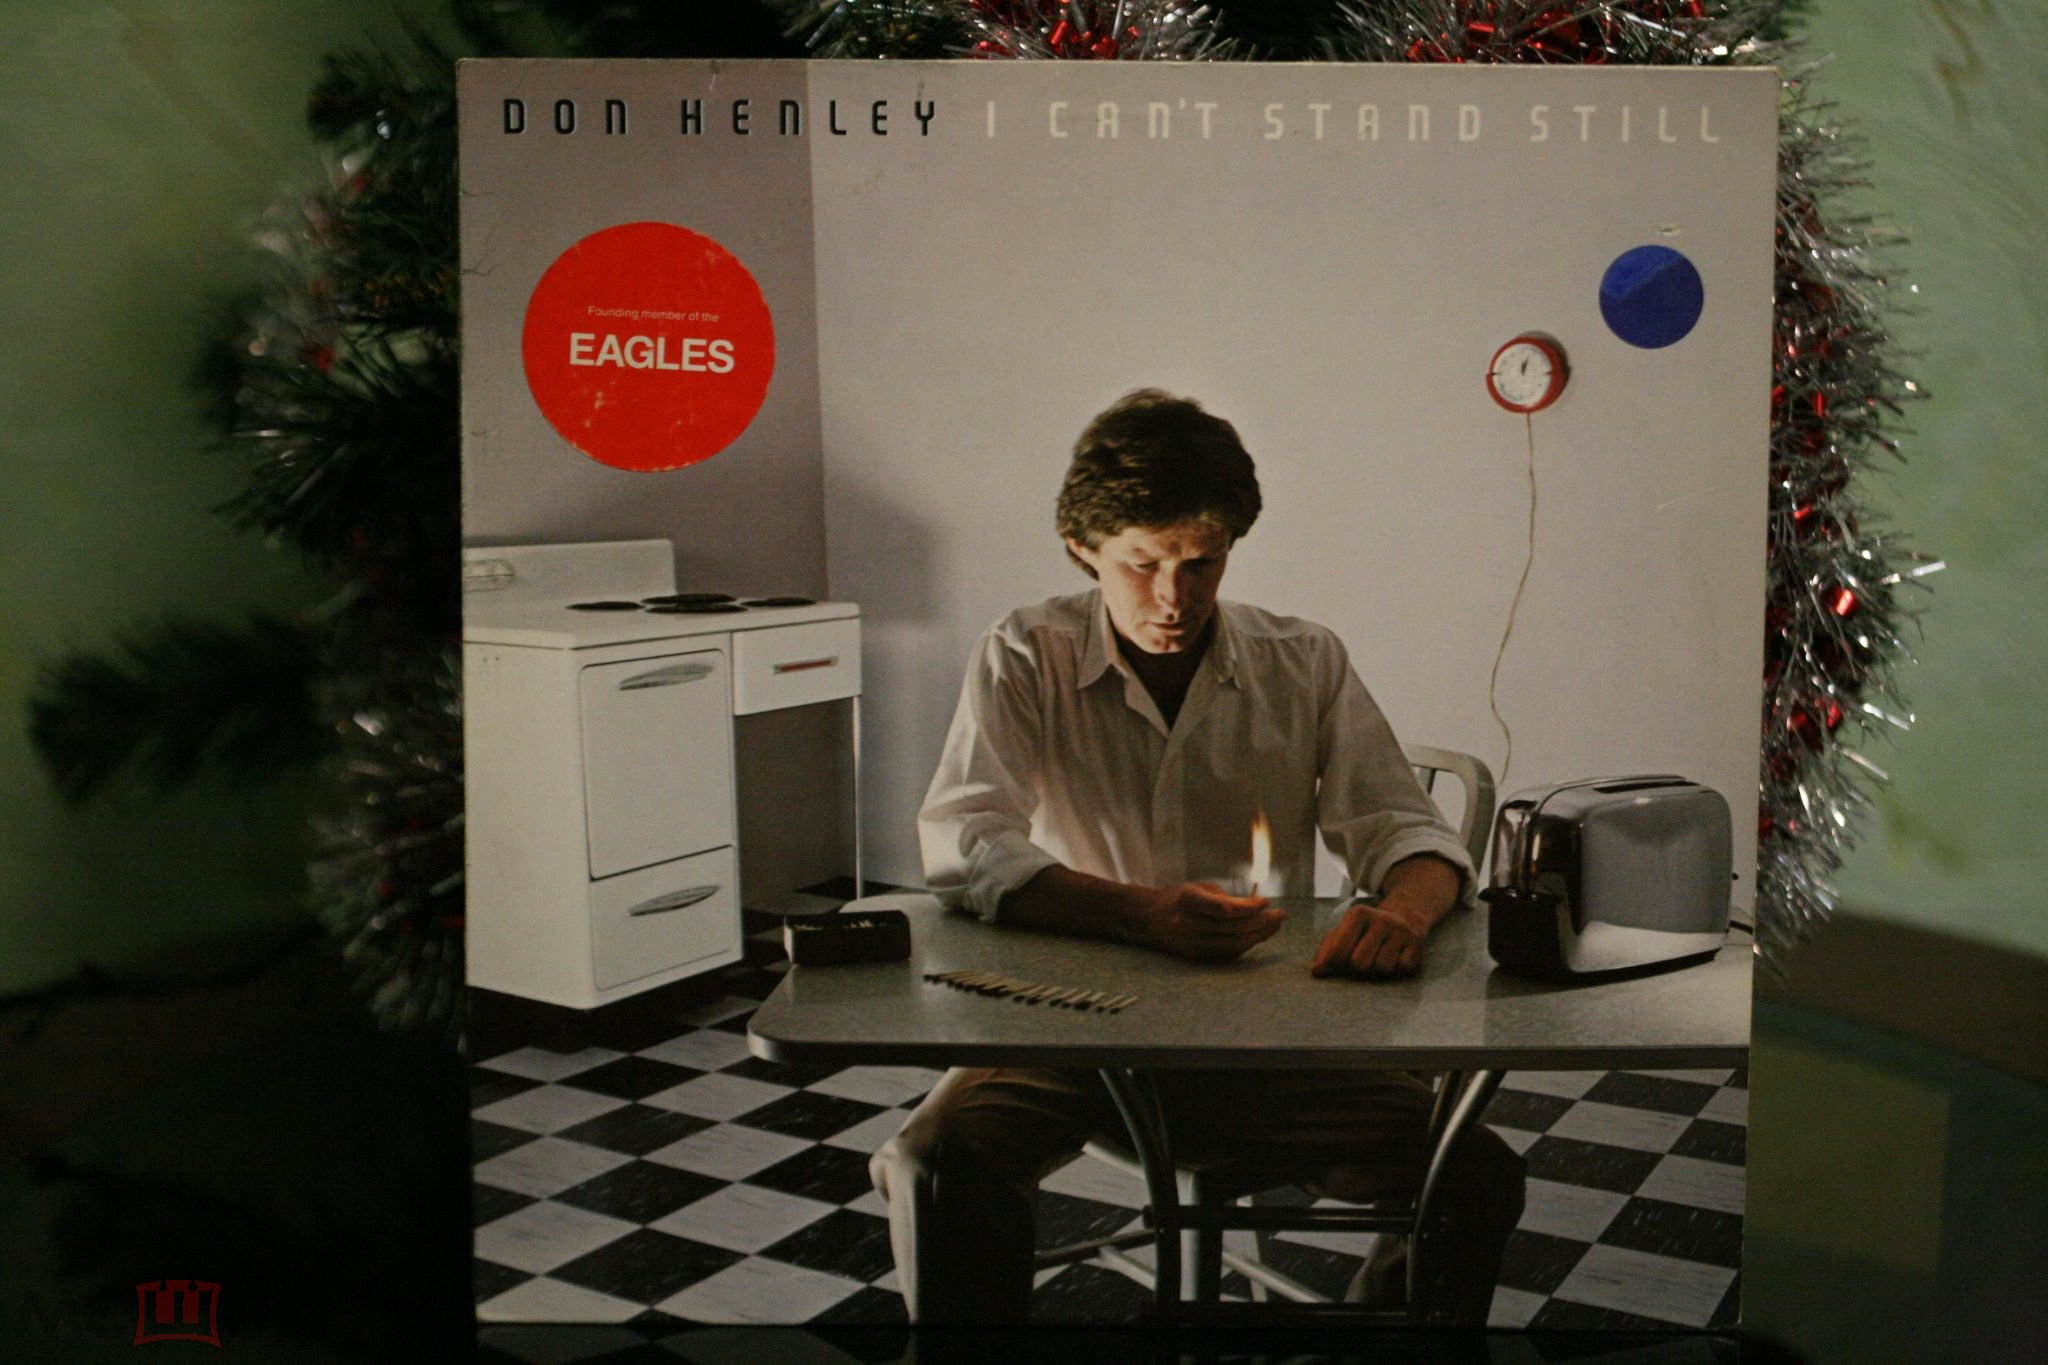 Don Henly Christmas.Don Henley I Can T Stand Still Ex Eagles Lp 1982 Germany